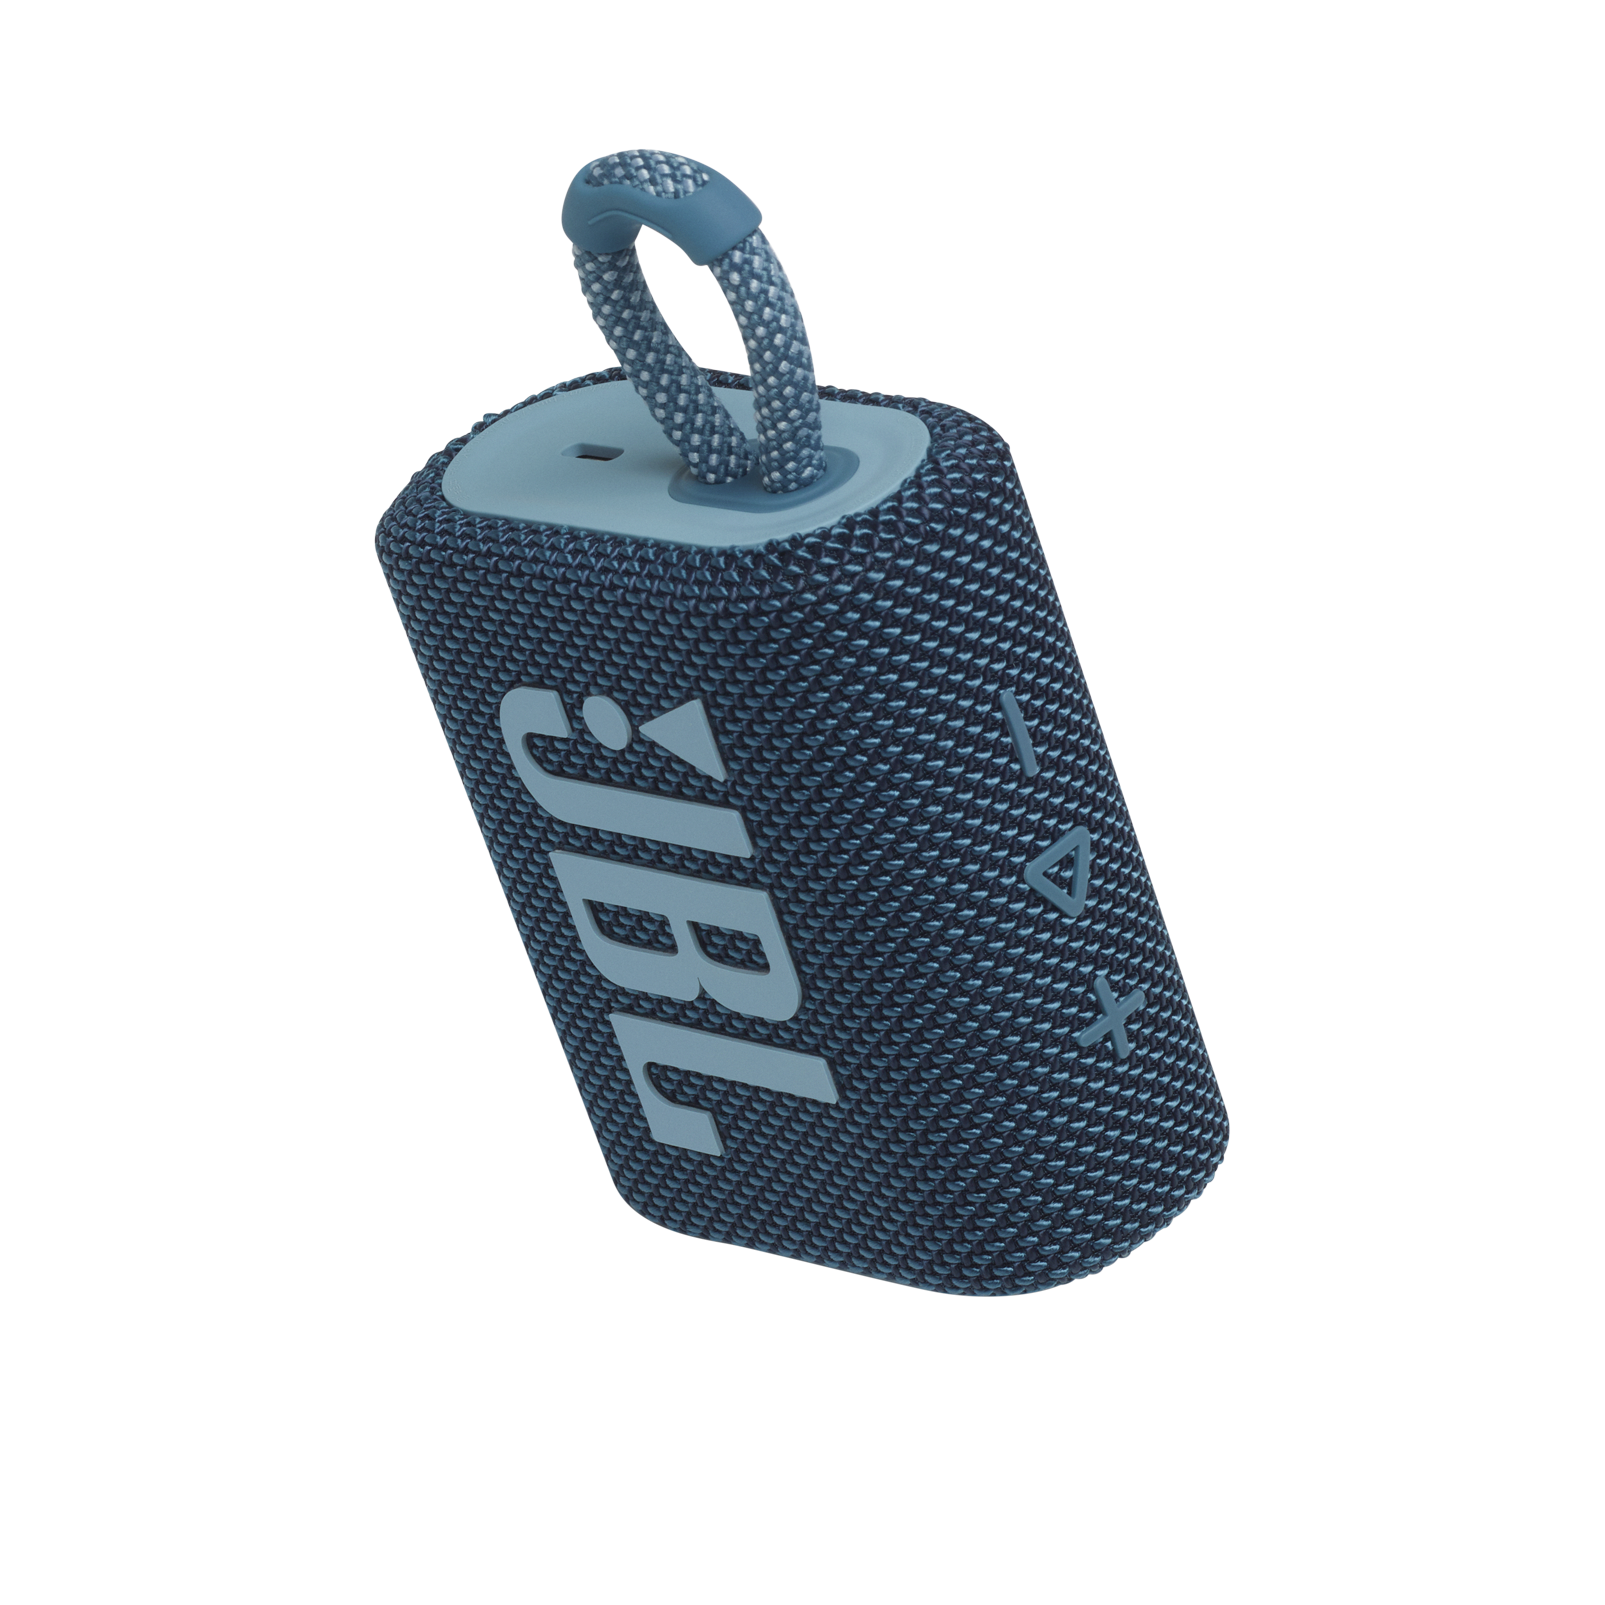 JBL GO 3 - Blue - Portable Waterproof Speaker - Detailshot 2